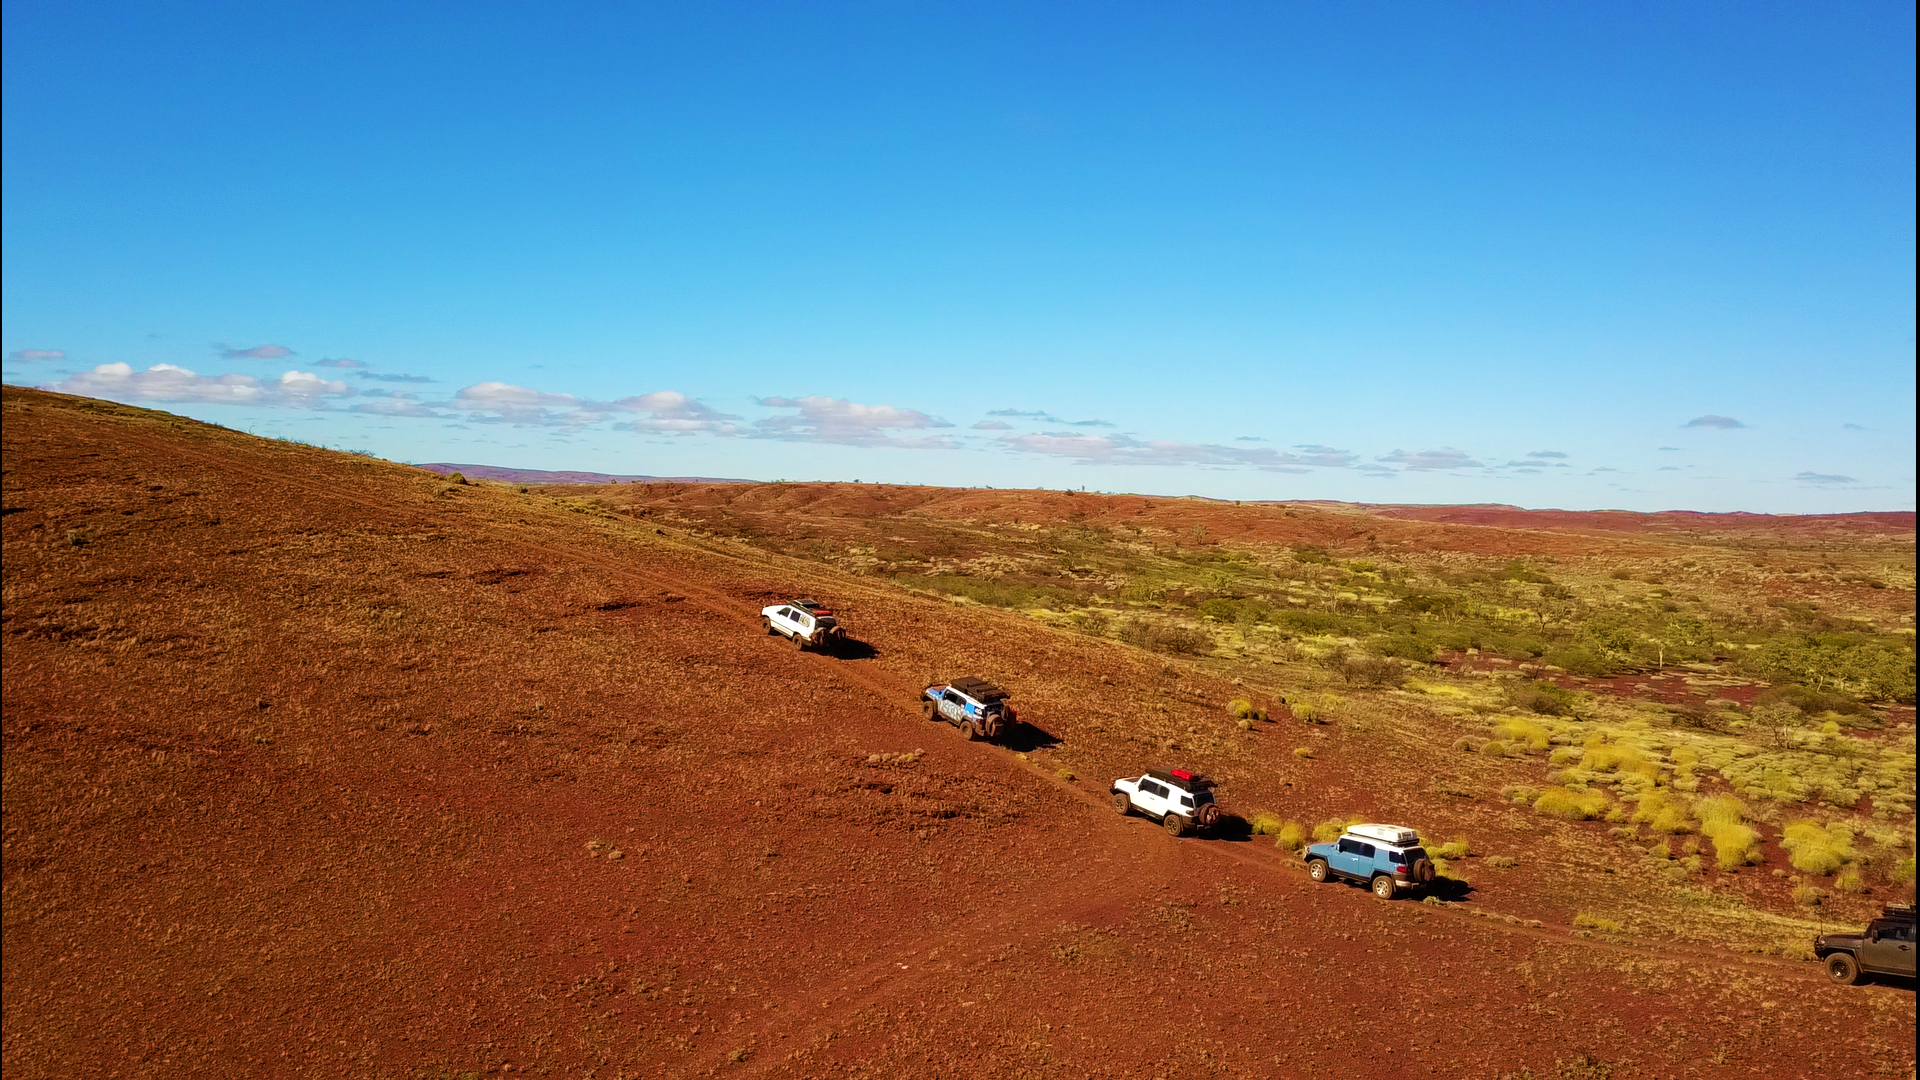 Drones: Now allowed in WA's National Parks – Or are they? – UPDATED